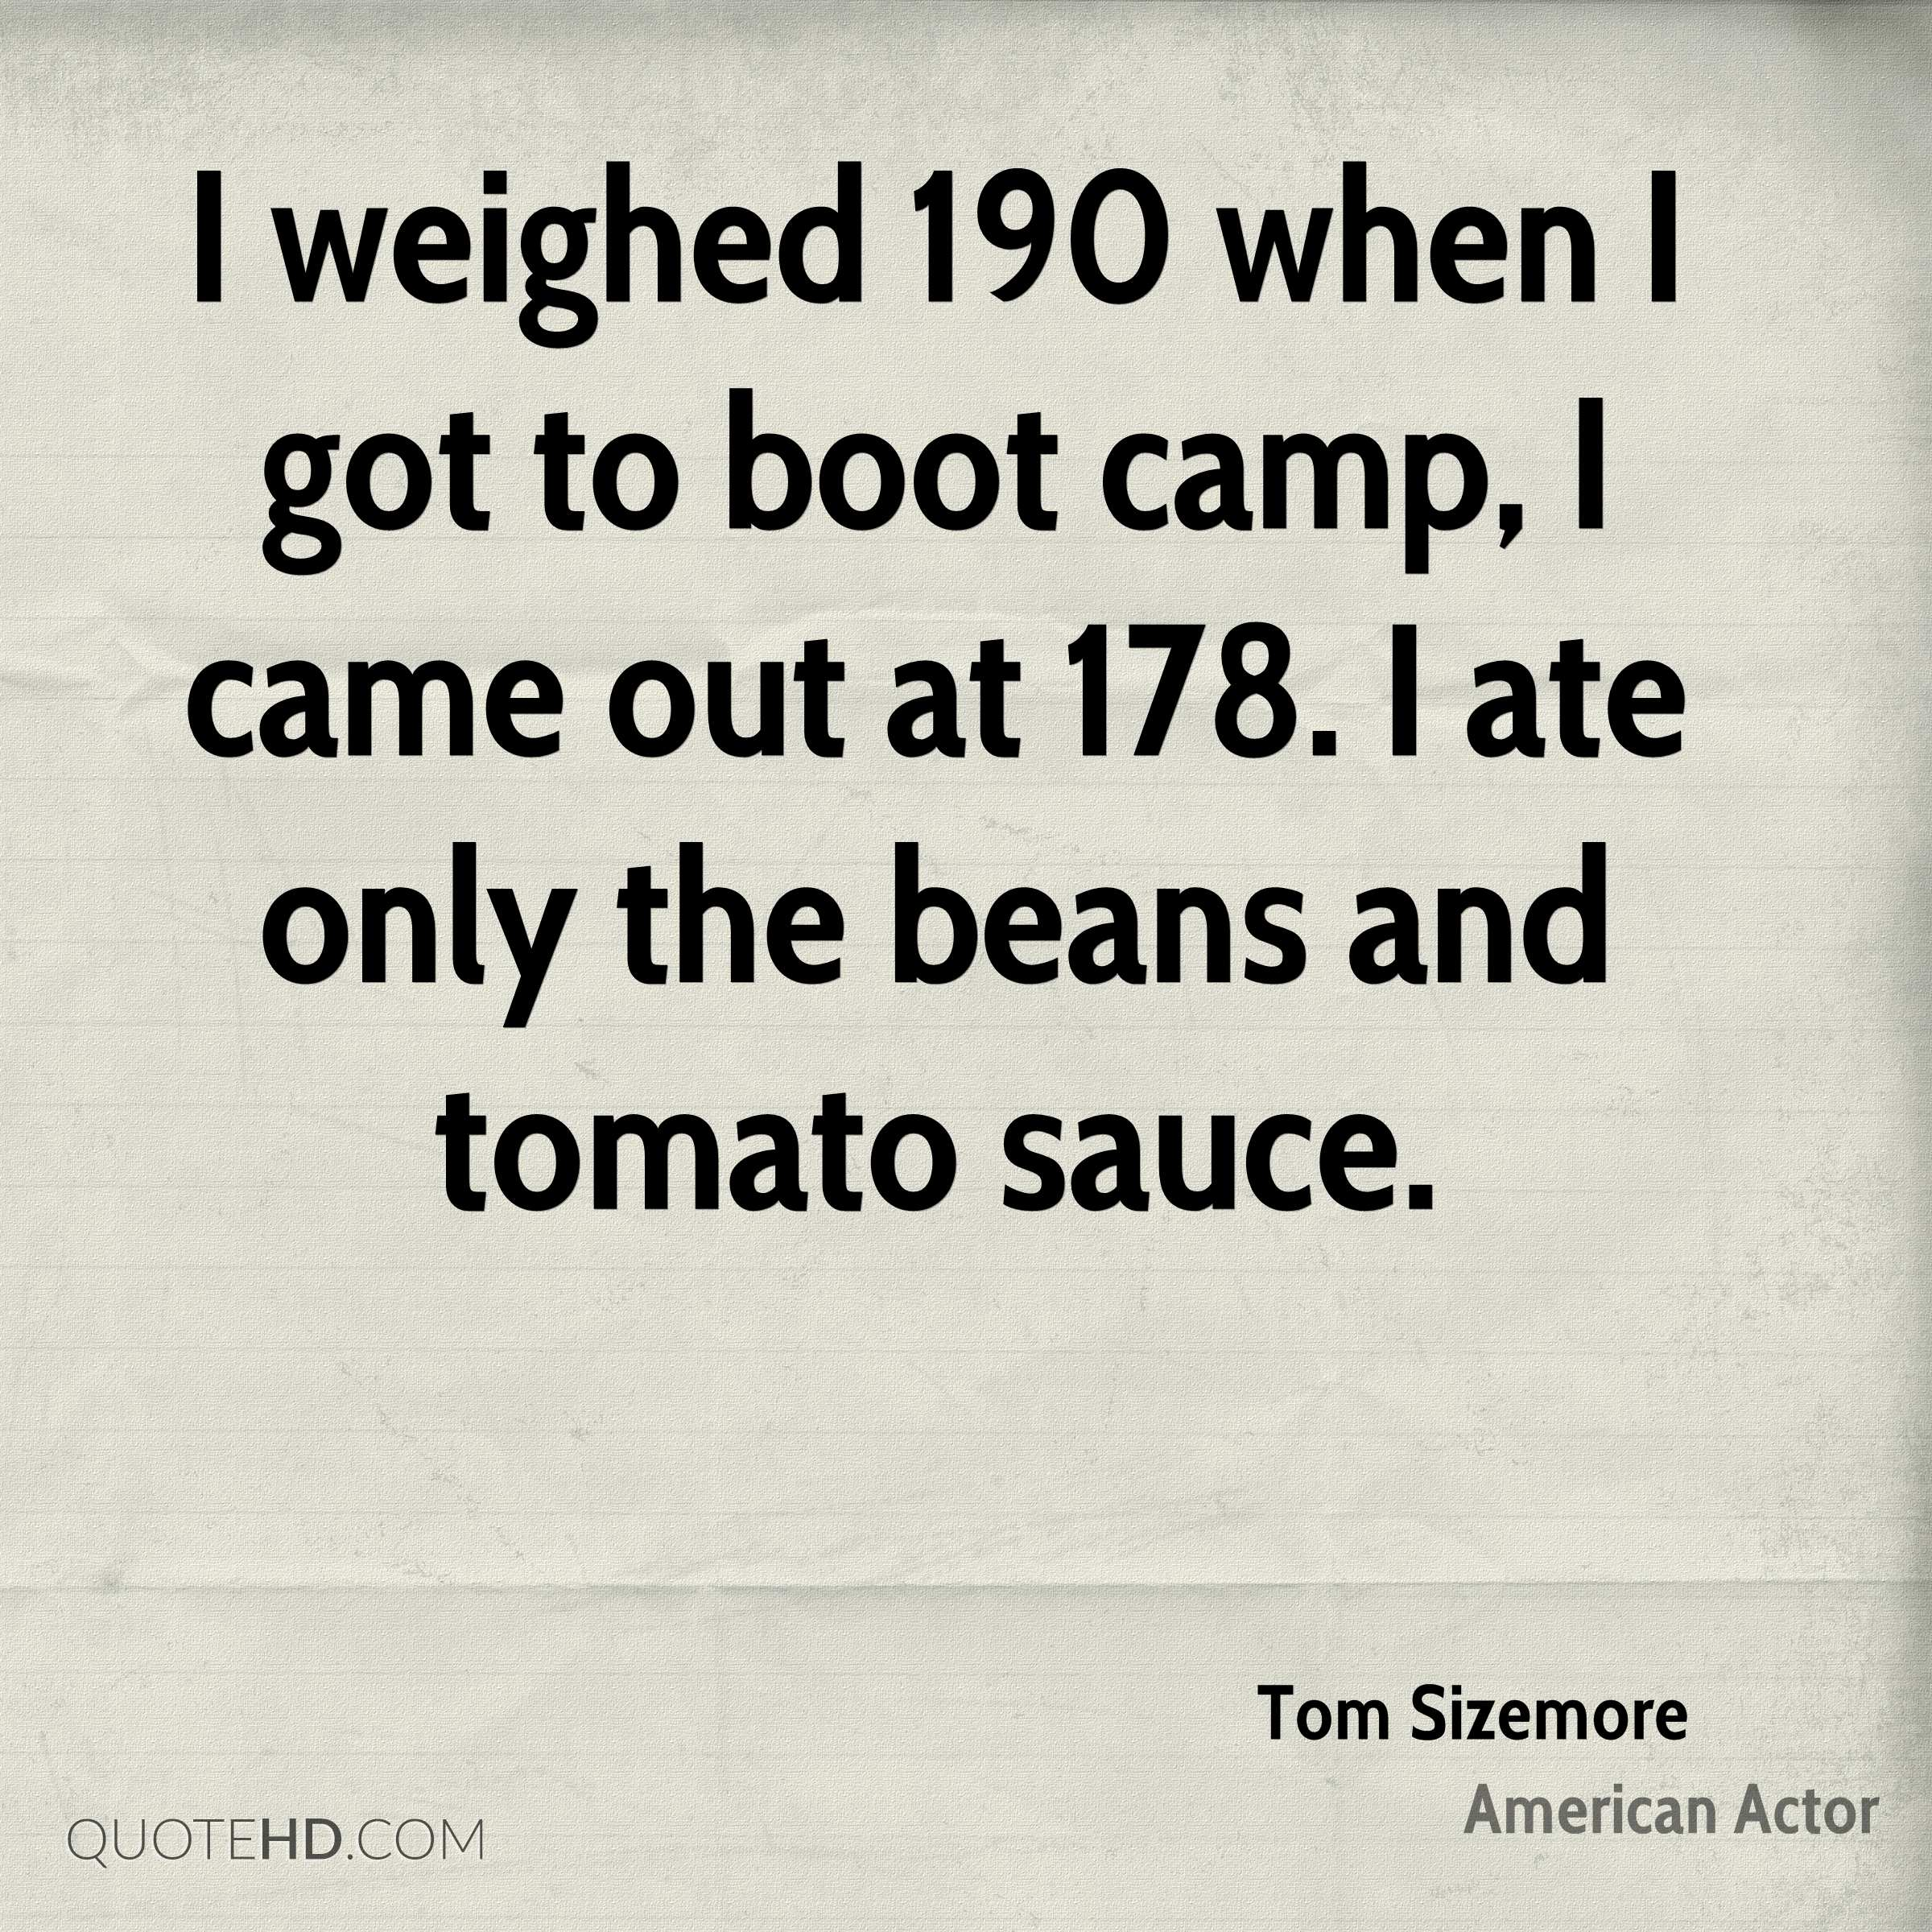 I weighed 190 when I got to boot camp, I came out at 178. I ate only the beans and tomato sauce.